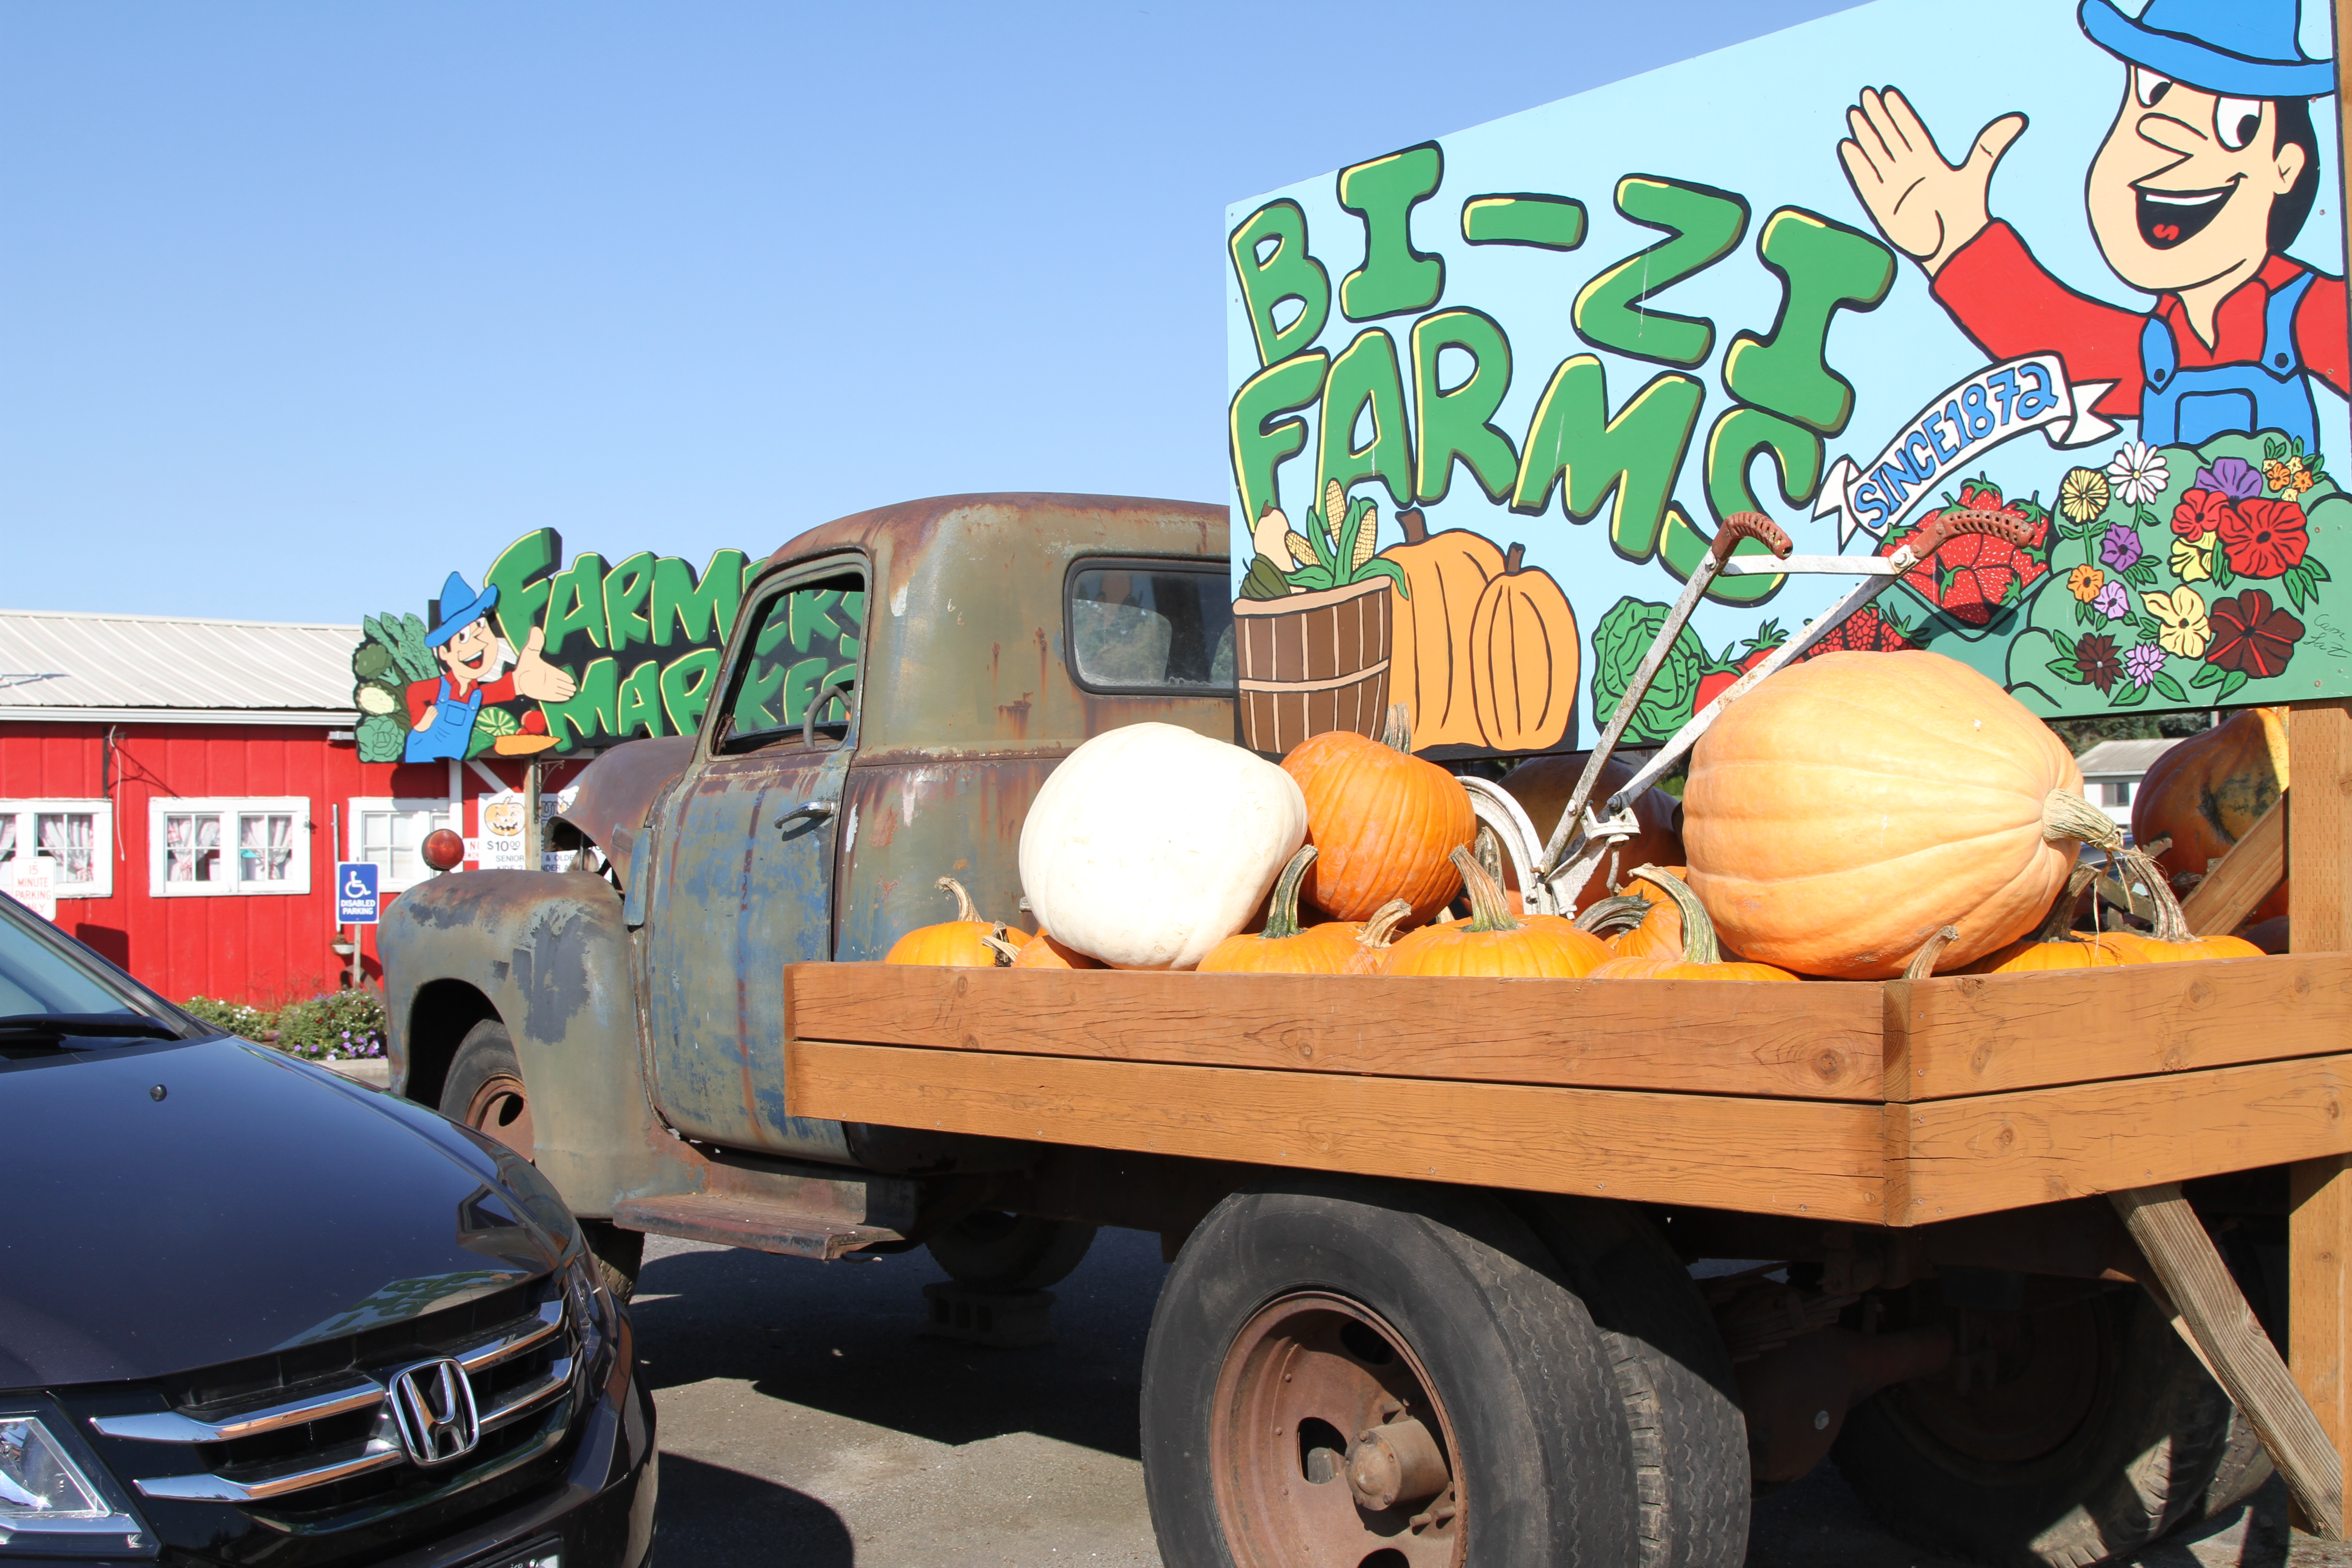 The only way to visit the Bi-Zi Farms pumpkin patch is to go online and book a ticket. Owners expect half the visitors they saw last year.